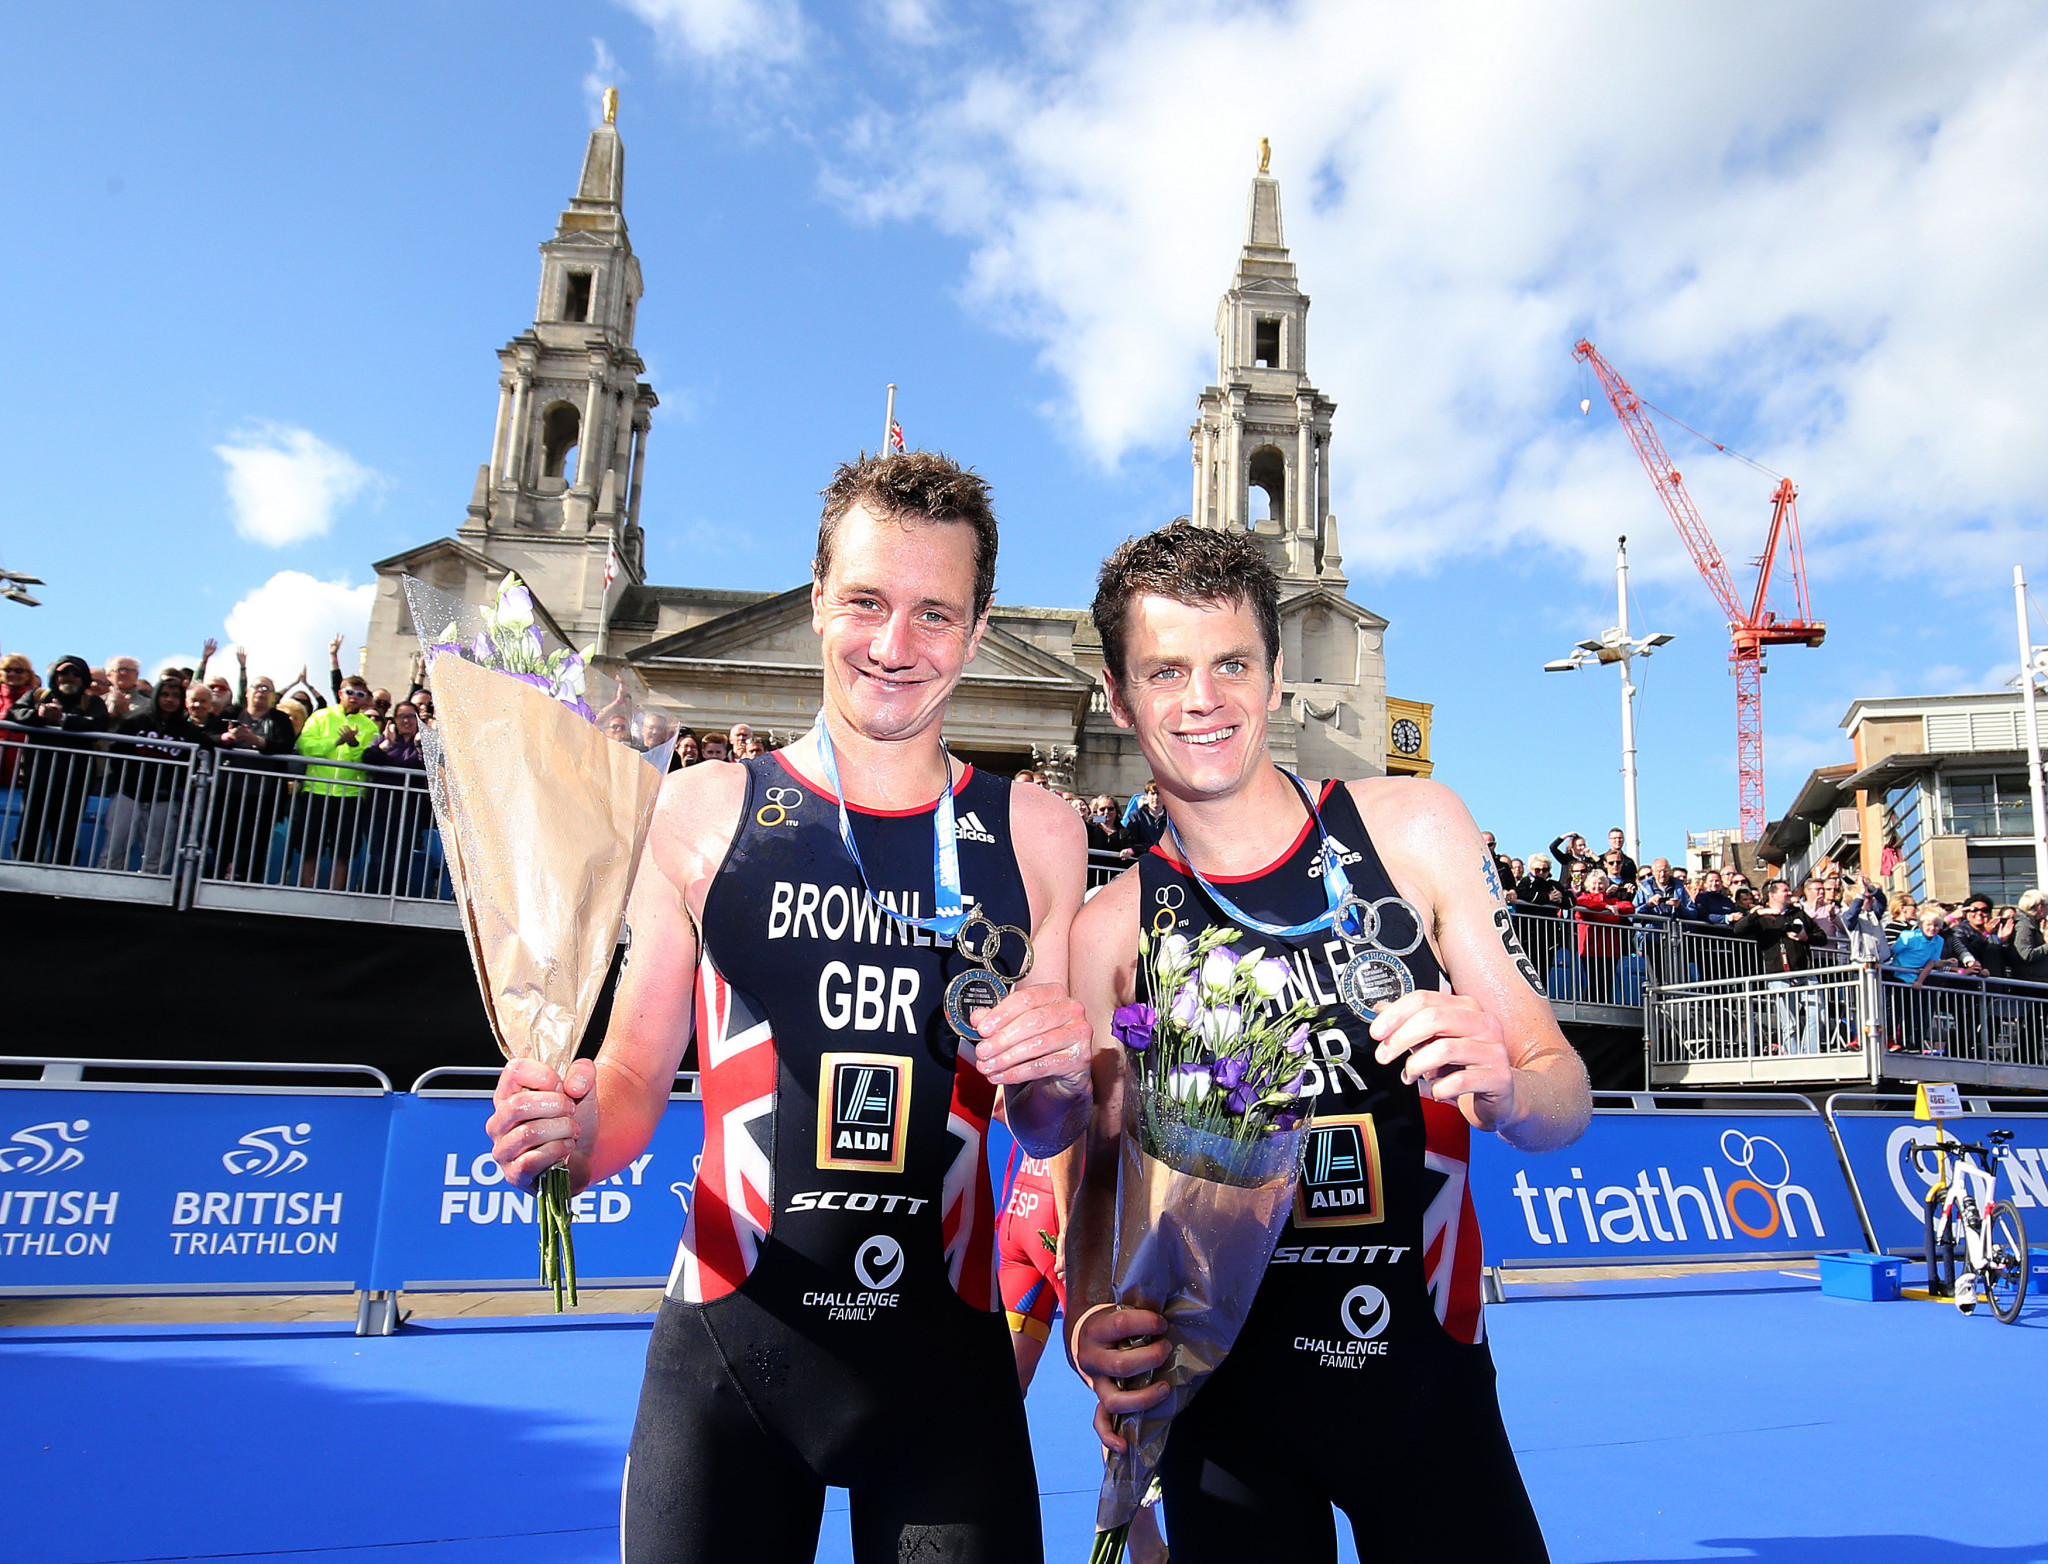 New Olympic triathlon champion to be named at Tokyo 2020 as Alastair Brownlee misses out